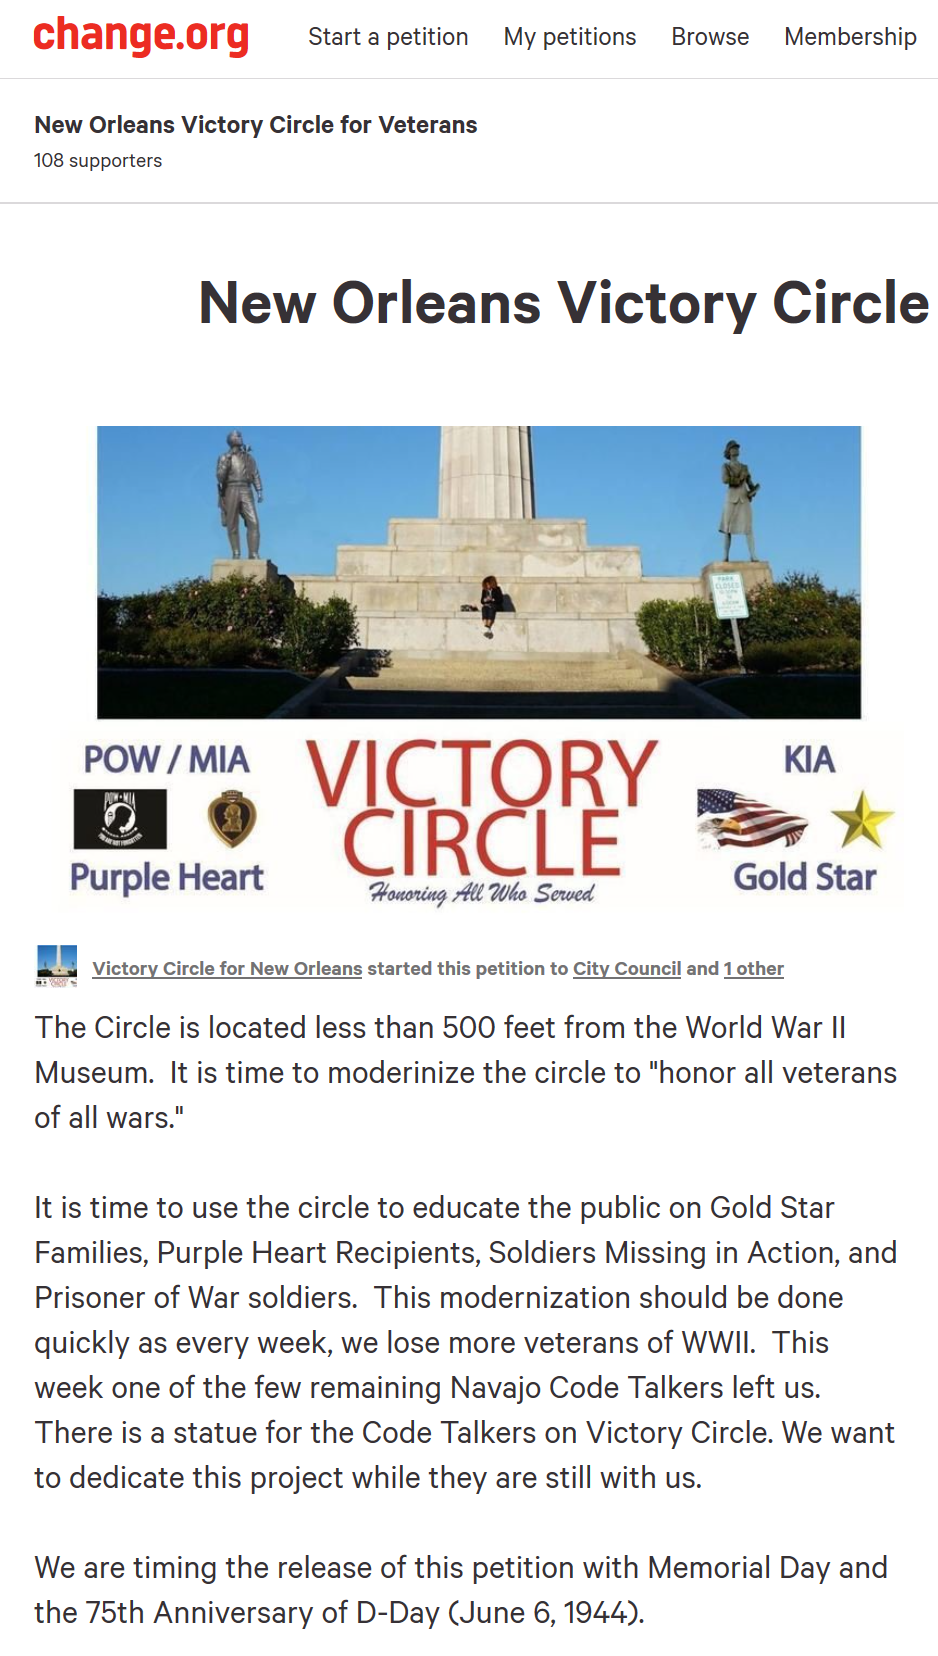 Please Share the Victory Circle Petition